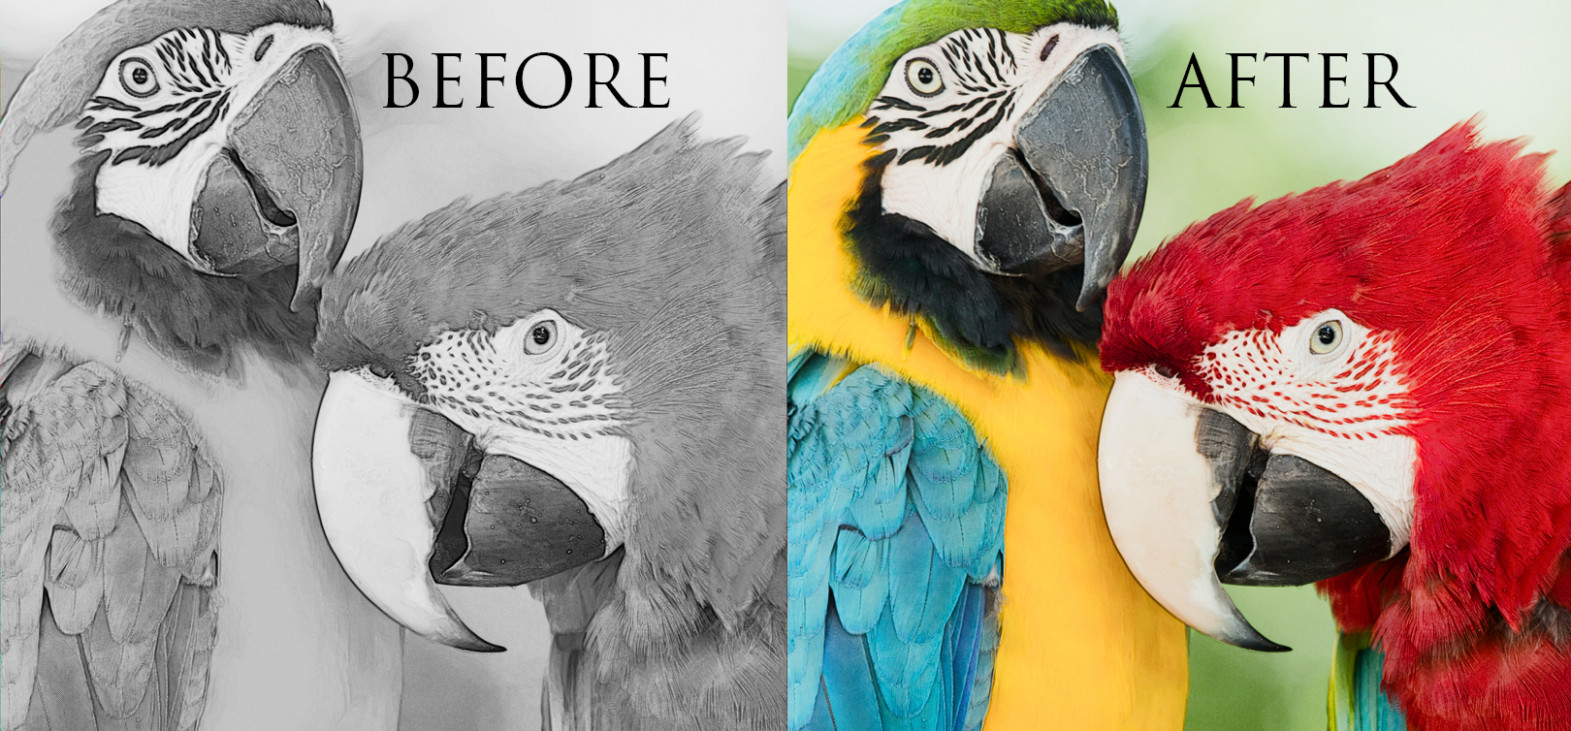 Have you tried greyscale coloring yet? It's incredible!